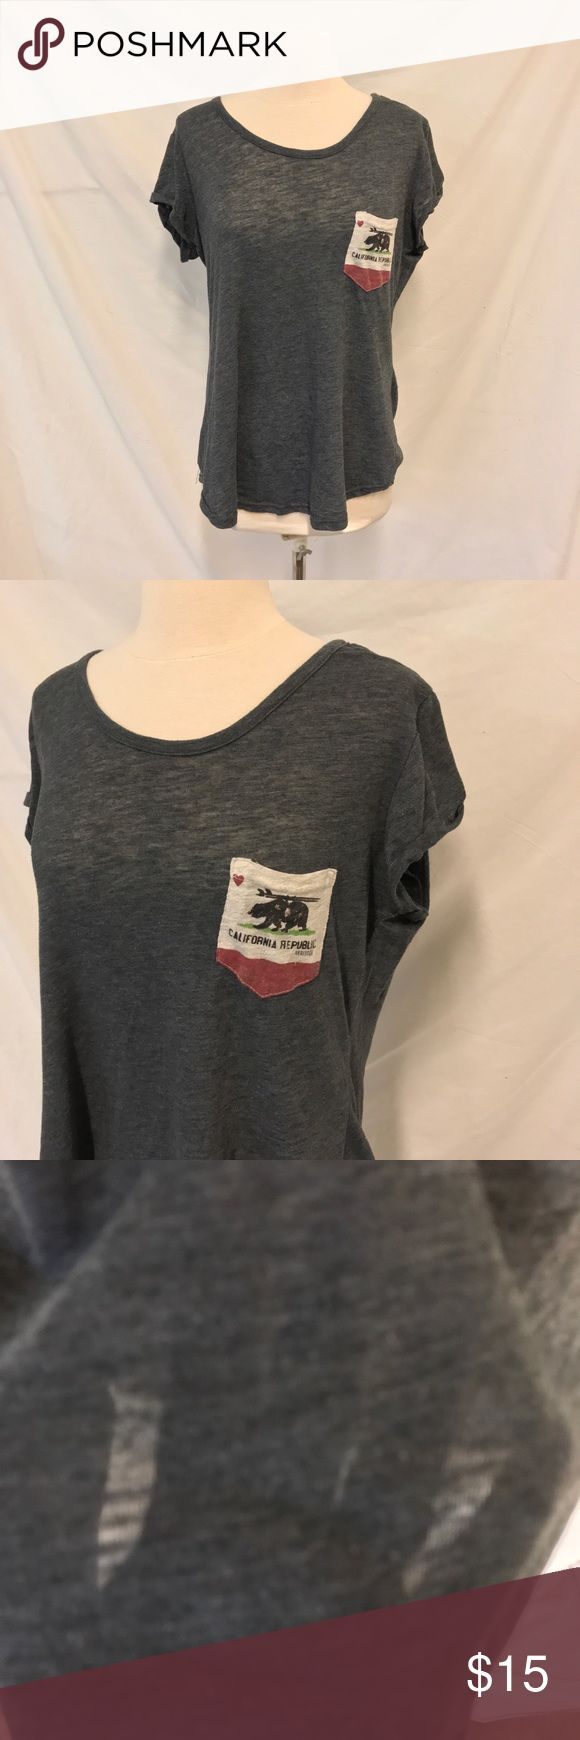 Reflex Gray Burnout Tee with Cali Flag Pocket Reflex. Size 2XL. Gray Burnout Tee with California flag on the pocket. Lightweight material. Scoop Neck. Short sleeve. Does not fit as a 2X, I would say it fits more like a large. Check measurements. Excellent used condition. Bust: 20.5 inches. Length: 26.5 inches. ALL MEASUREMENTS ARE TAKEN WITH ITEM LAYING FLAT. 60% cotton and 40% polyester. ||893|| Reflex Tops Tees - Short Sleeve